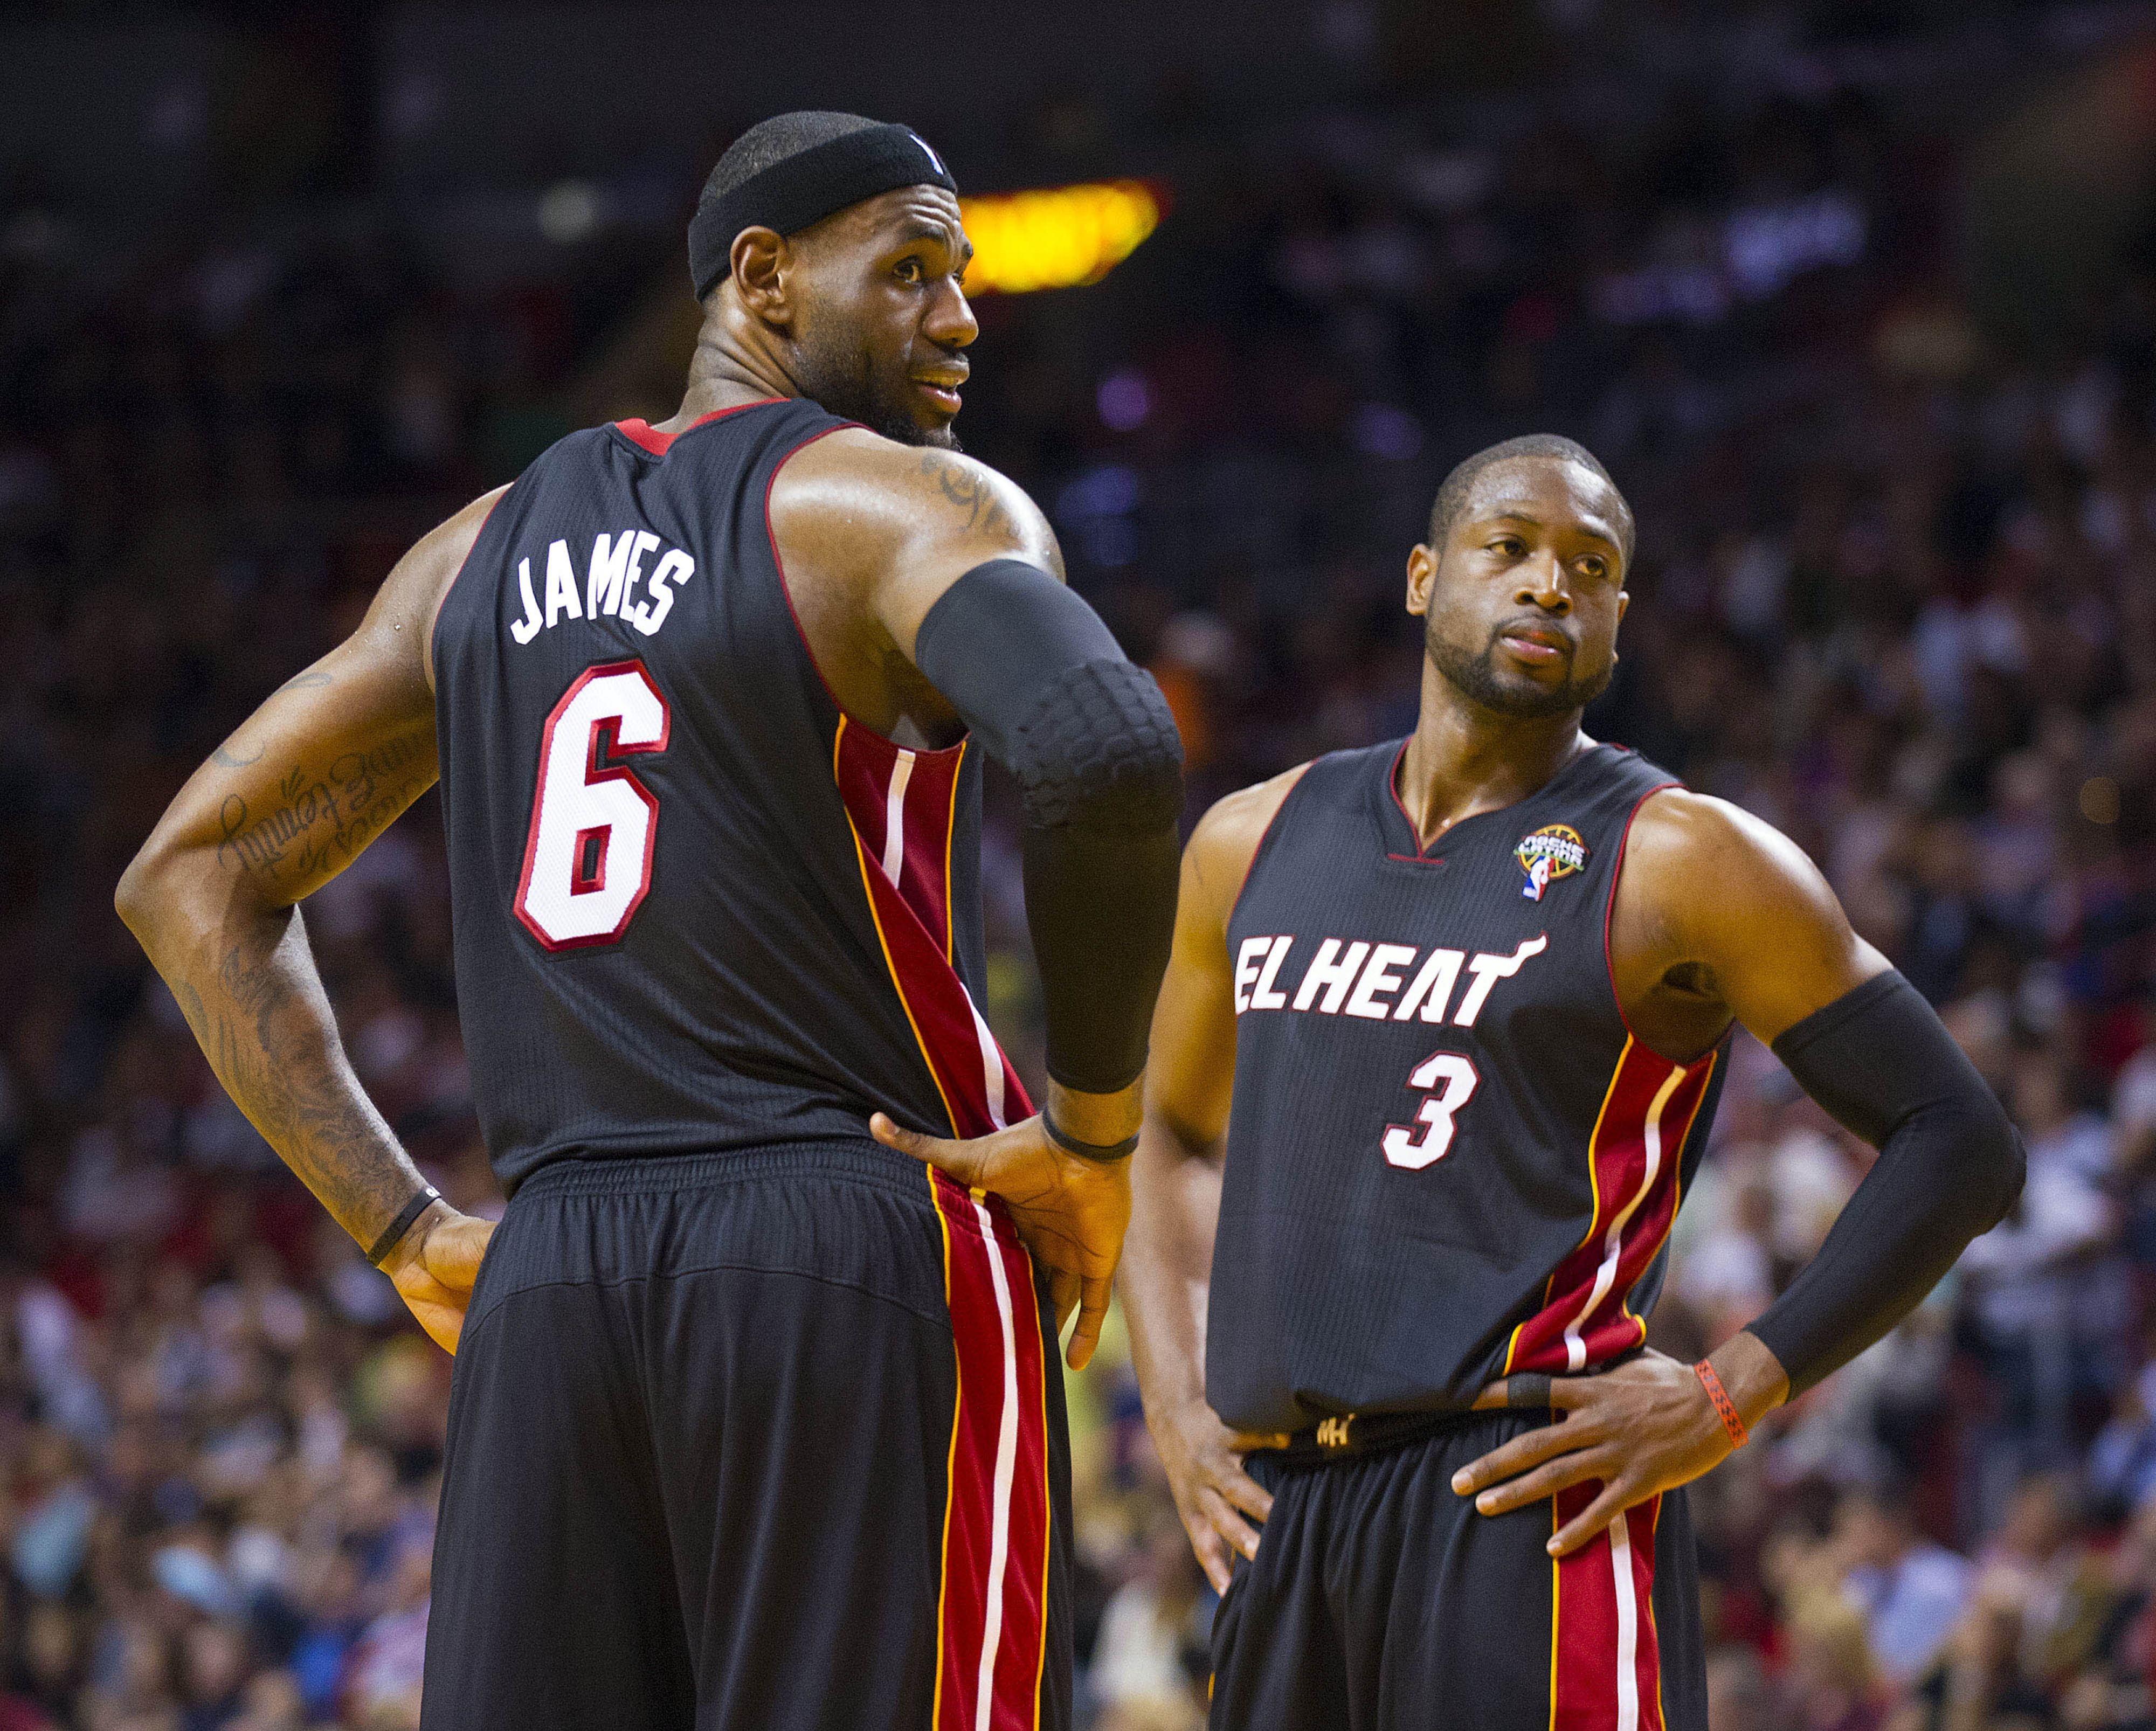 Remember Dwyane Wade? How the other Heat superstar makes Miami unstoppable